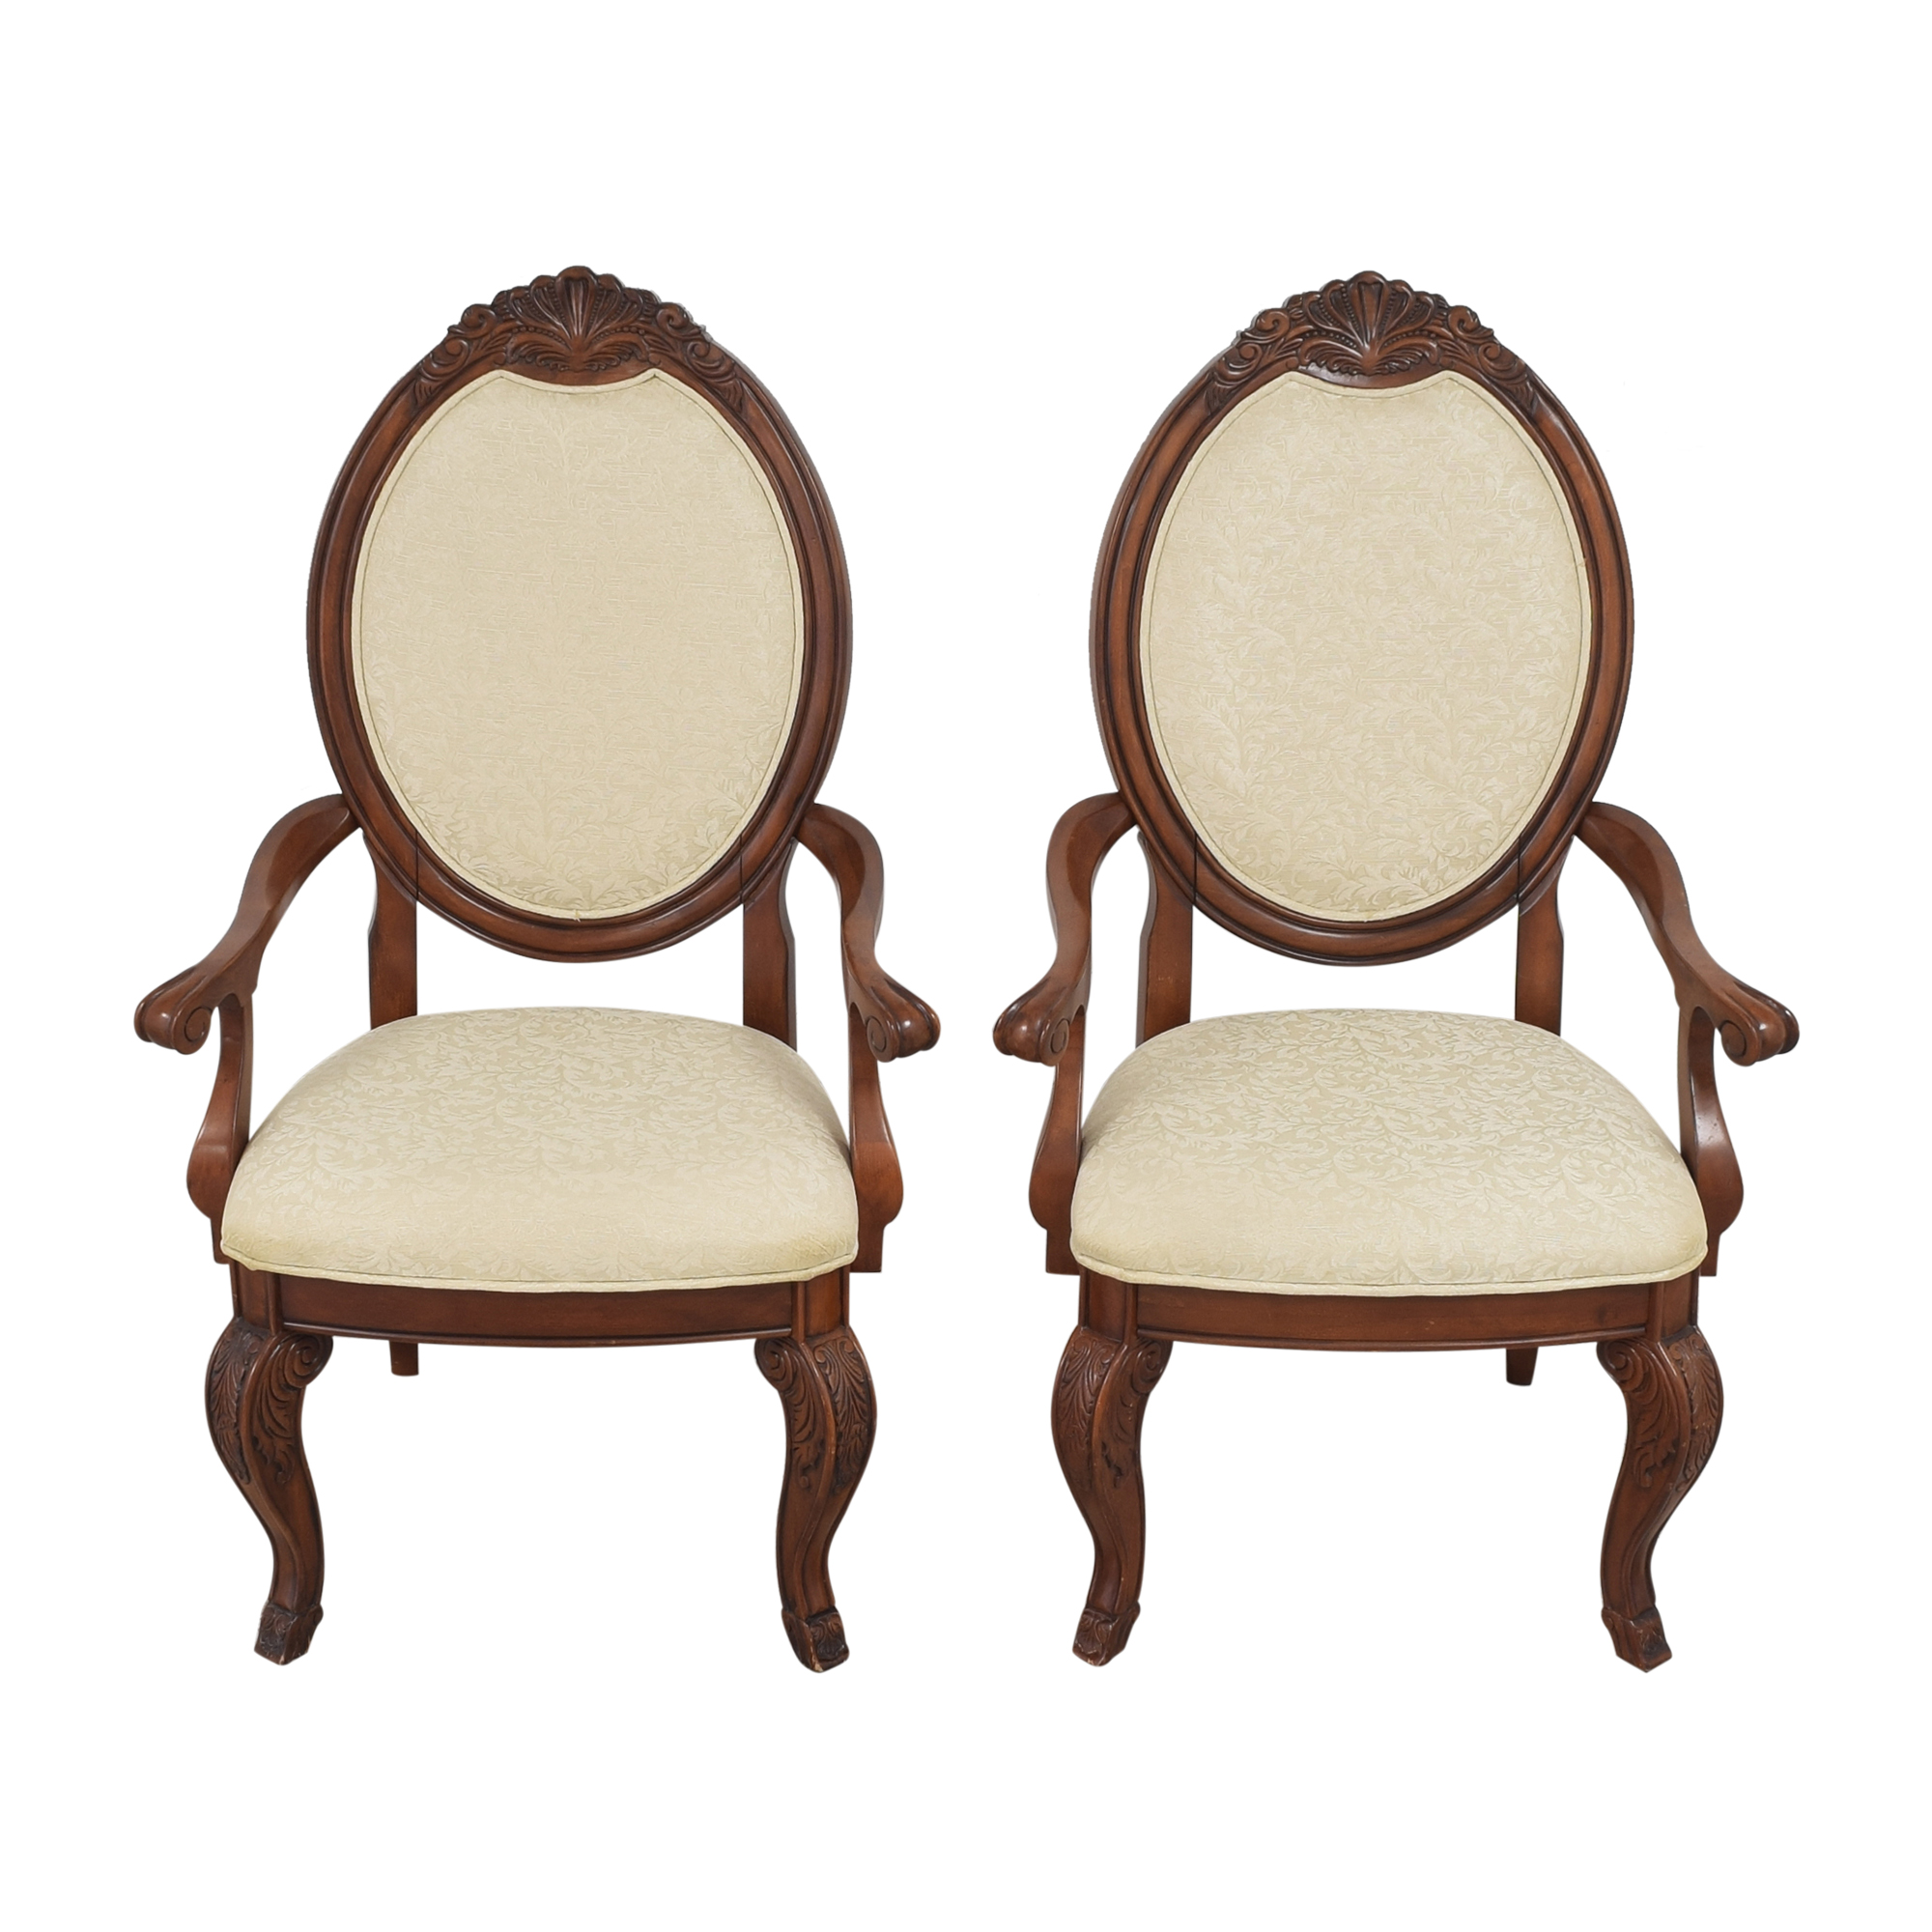 Raymour & Flanigan Raymour & Flanigan Oval Back Dining Arm Chairs